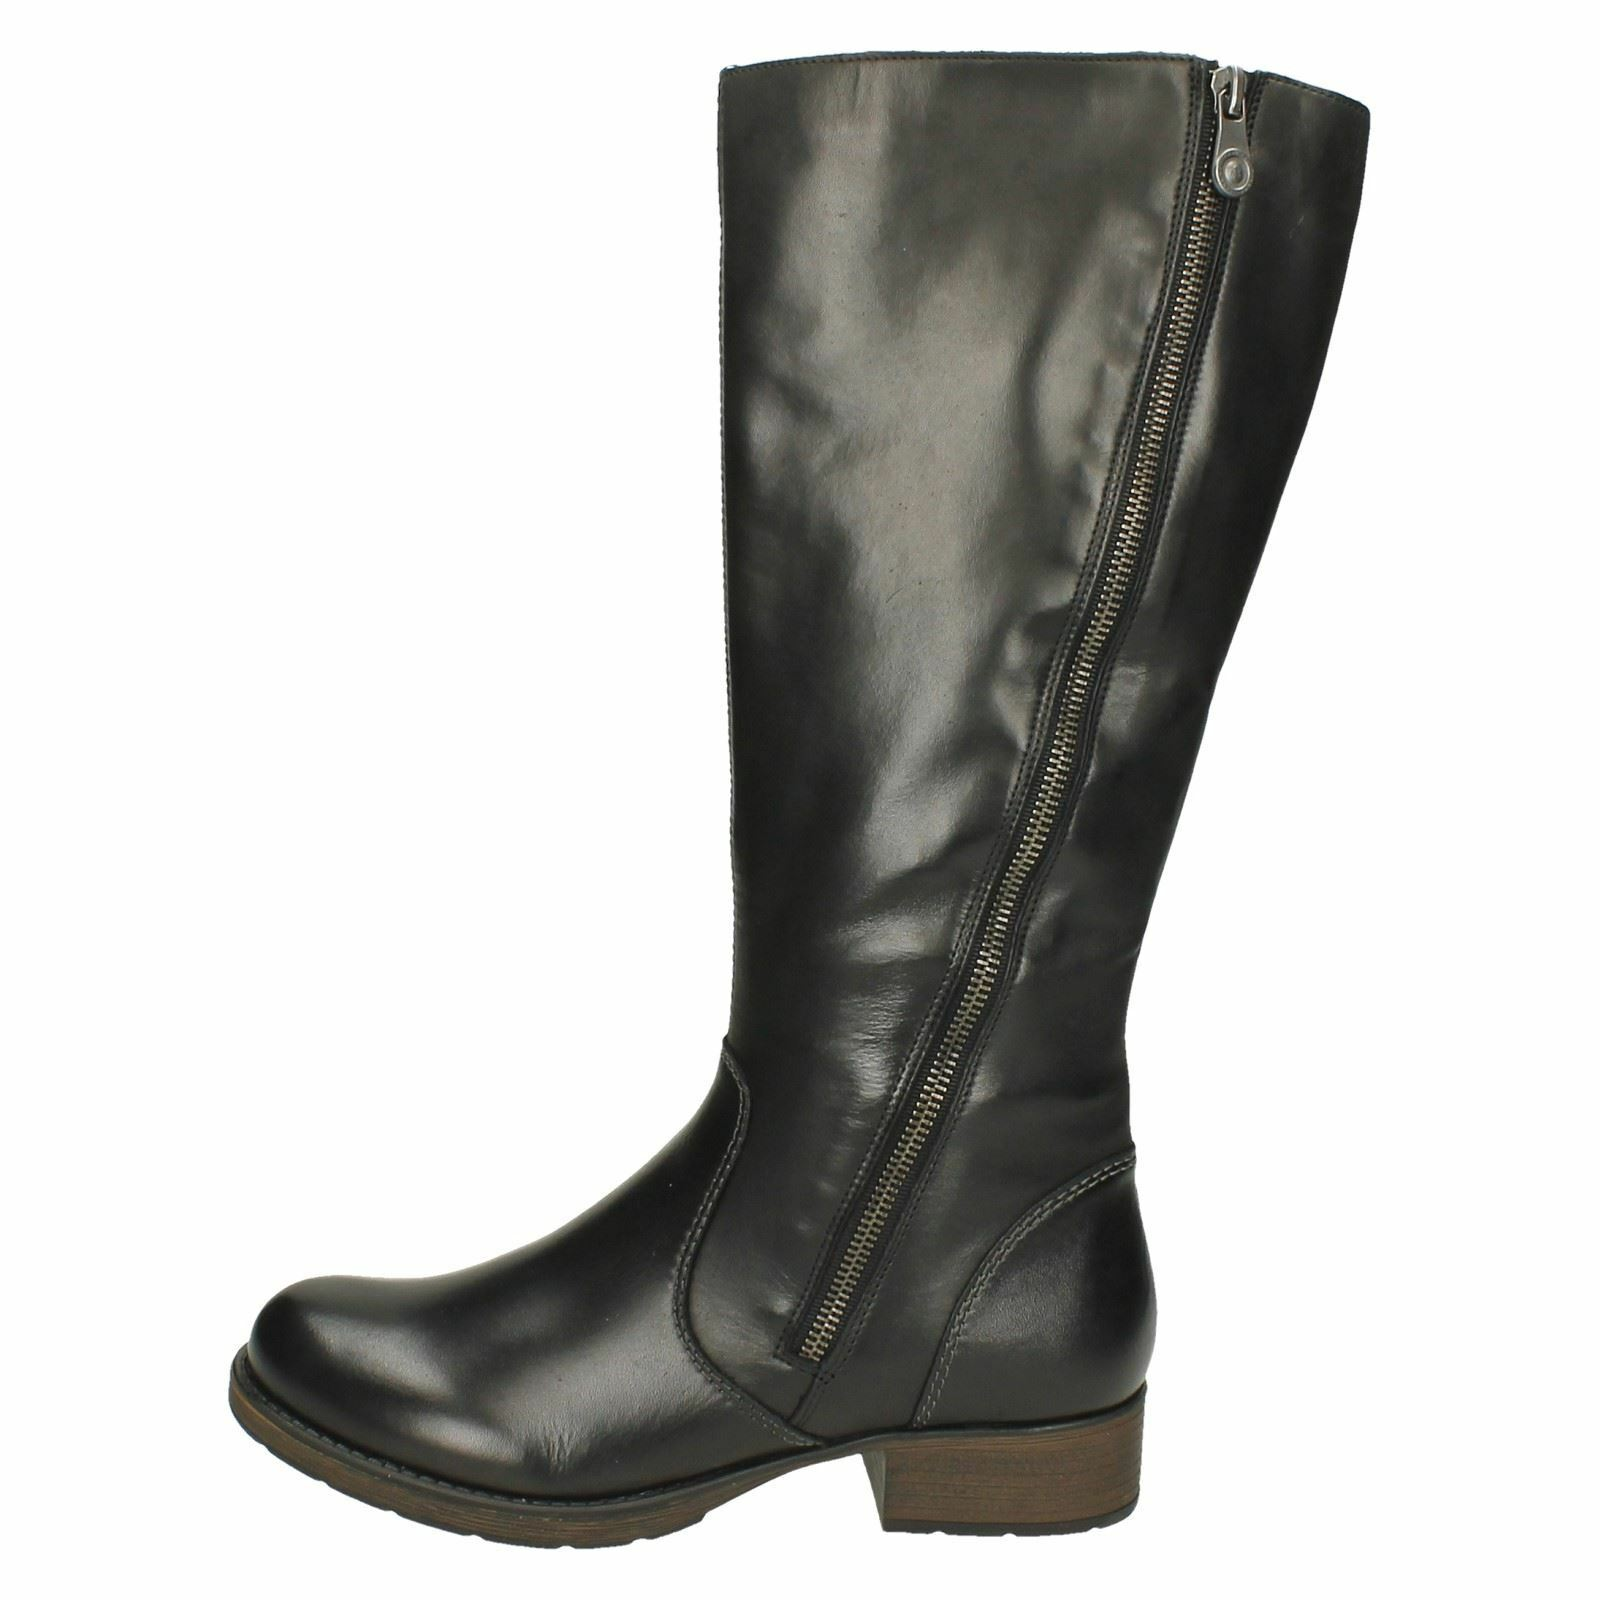 Z9581 LADIES RIEKER RIEKER RIEKER ZIP WARM LOW HEEL LEATHER CLASSIC RIDING STYLE LONG Stiefel f74712